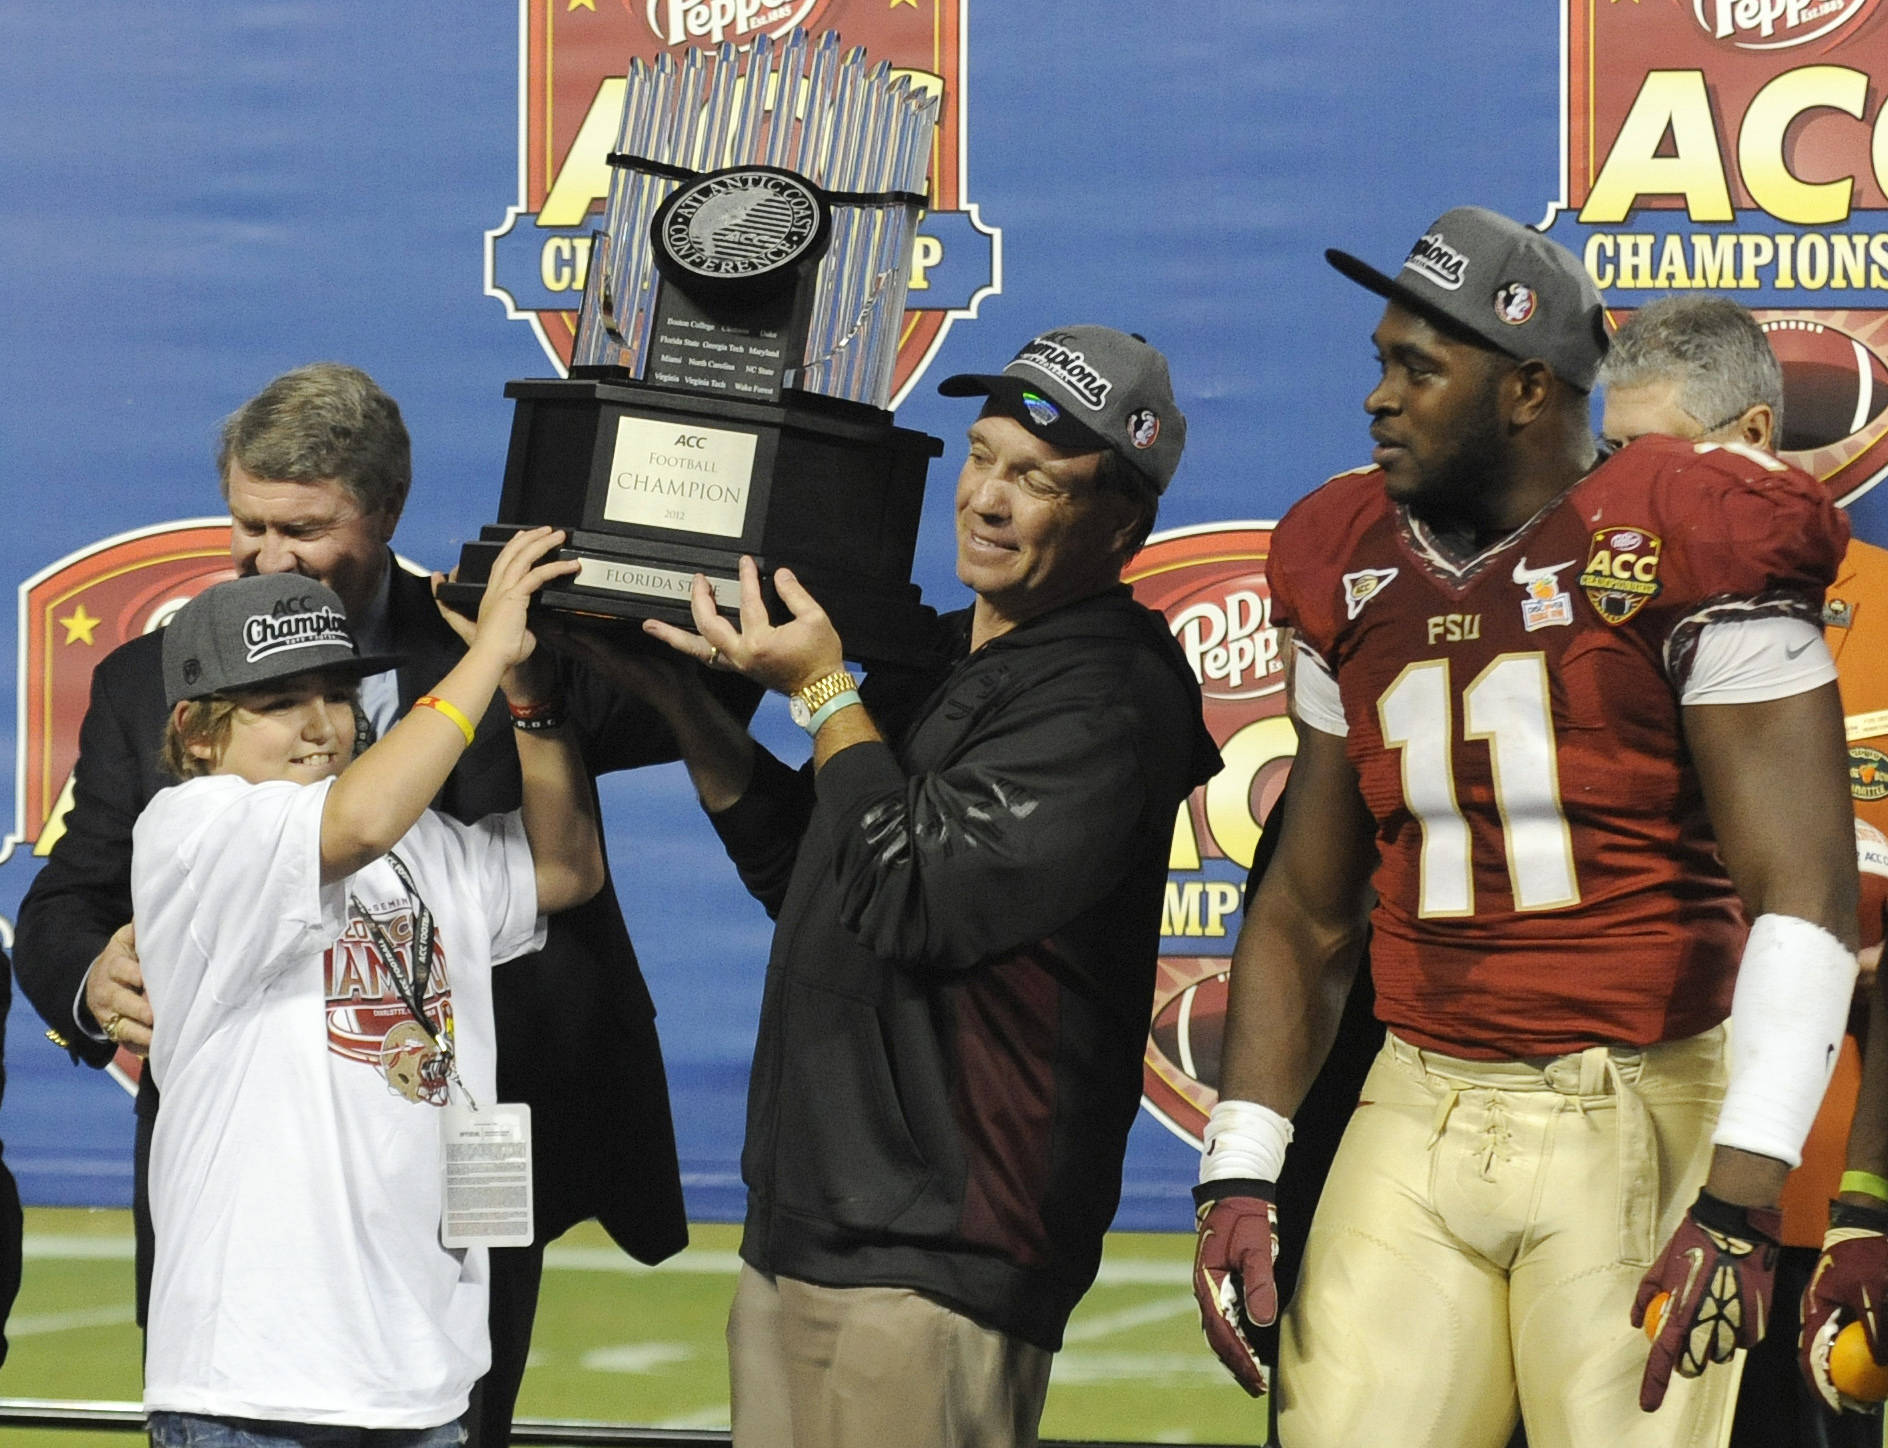 Florida State coach Jimbo Fisher, center, raises the trophy with his son, Trey, left, as Vince Williams (11) looks on after Florida State's 21-15 win over Georgia Tech in the Atlantic Coast Conference championship NCAA college football game in Charlotte, N.C., Saturday, Dec. 1, 2012. (AP Photo/Mike McCarn)